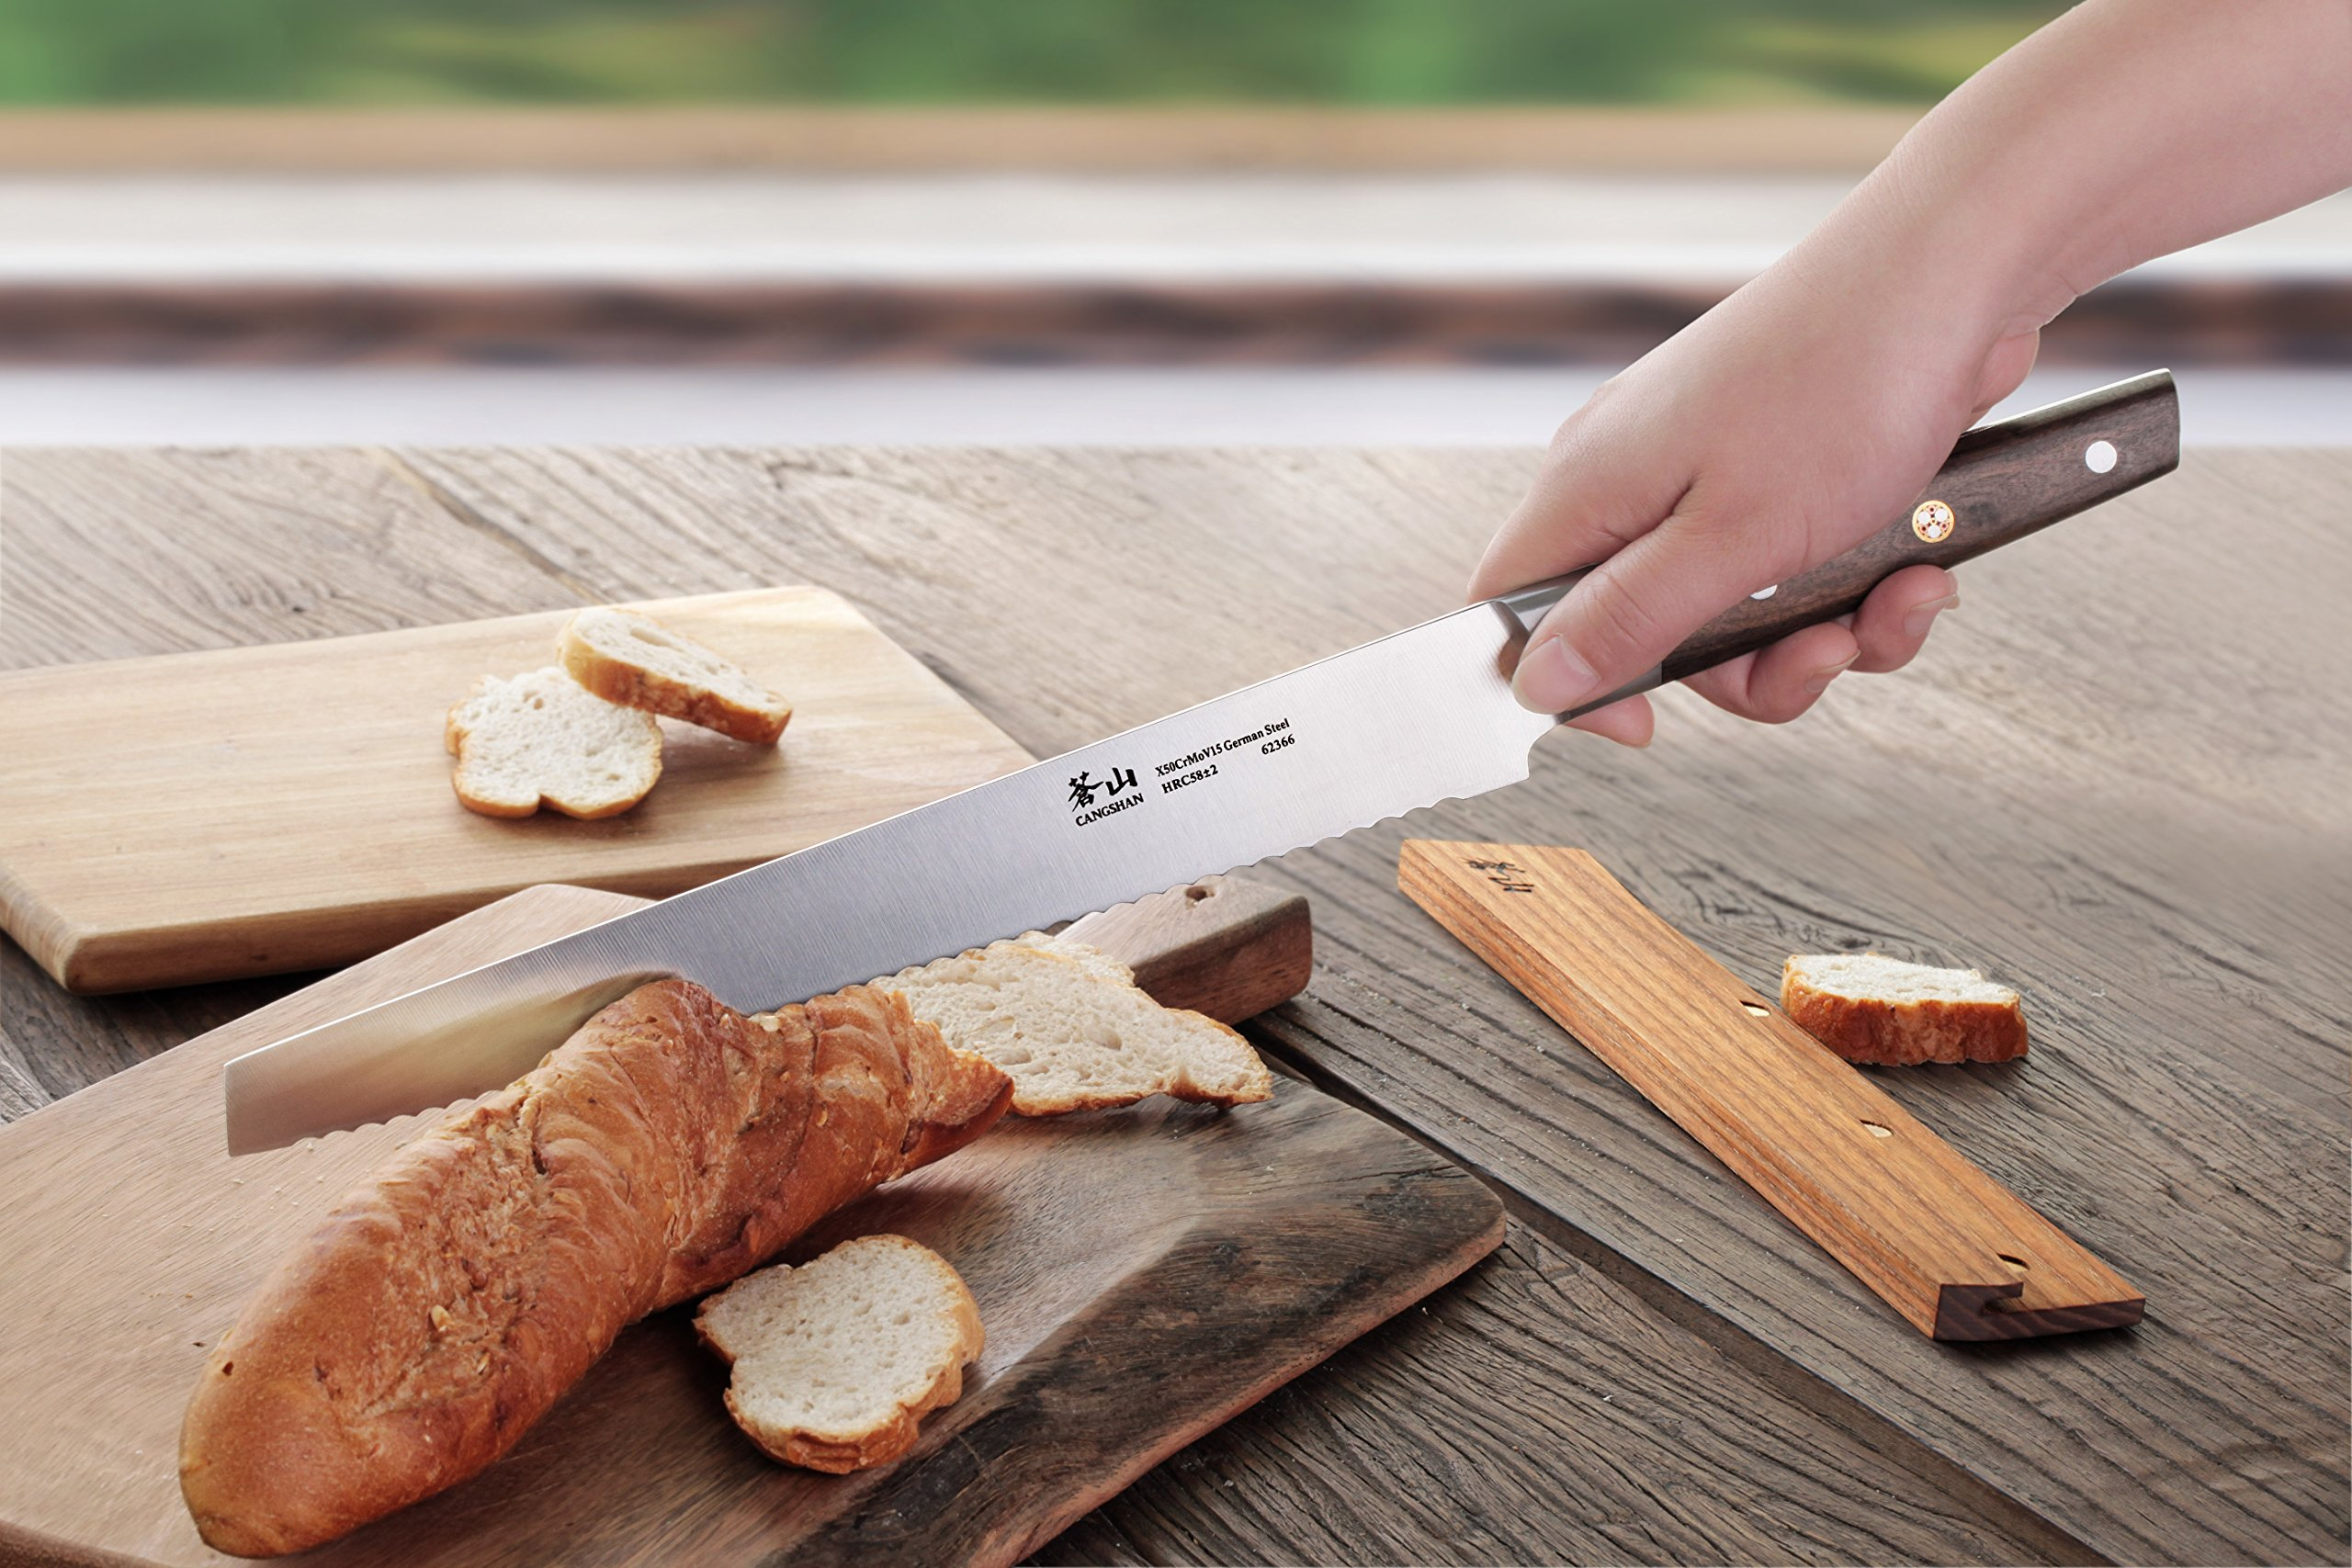 Cangshan R Series 62649 German Steel Forged Bread Knife with Ashwood Sheath, 10.25-Inch 8 Unique patent pending design that focuses on rich ultra-dense African blackwood handle Full tang forged from x50cr15mov german steel with hrc 58 +/- 2 on the rockwell hardness scale 8 in. bread knife perfect for slicing through a types of bread